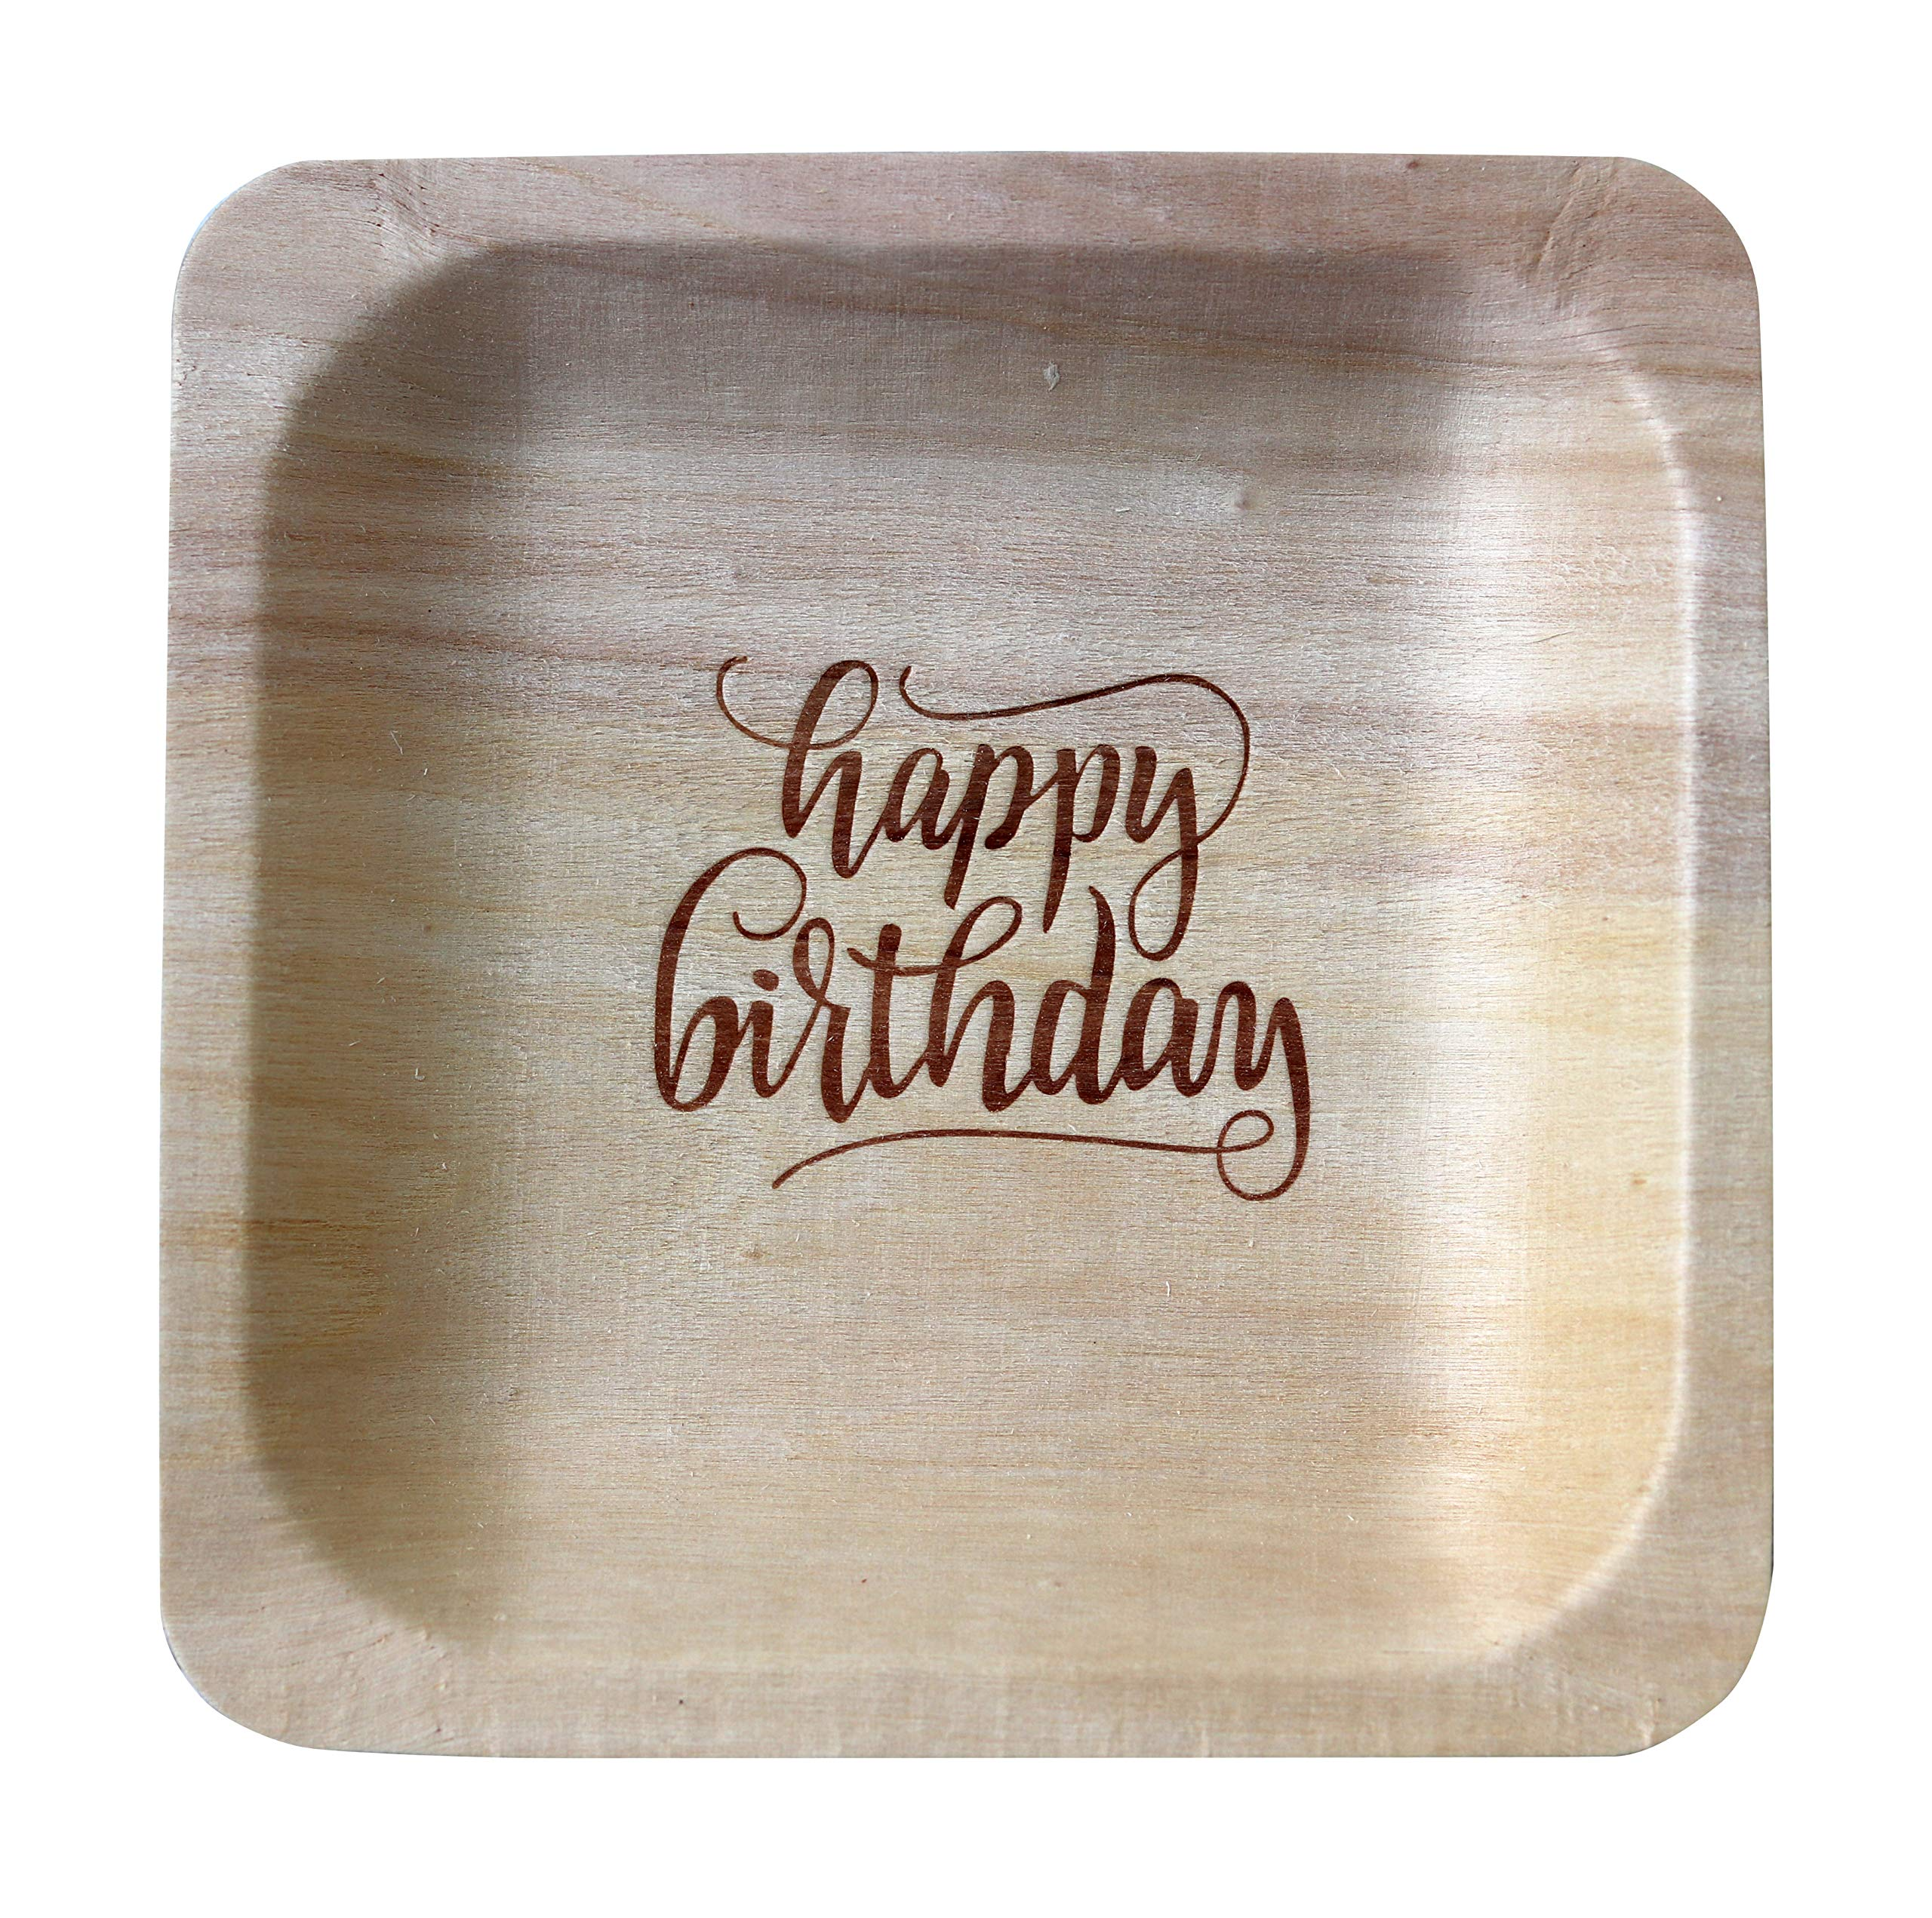 ''Happy Birthday'' StatementWare Disposable Birthday Plates (50-pack)—100% Natural and Eco-Friendly, Elegant Alternative to Happy Birthday Plates, Plastic Party Plates, and Cake Plates (5.5'' x 5.5'')